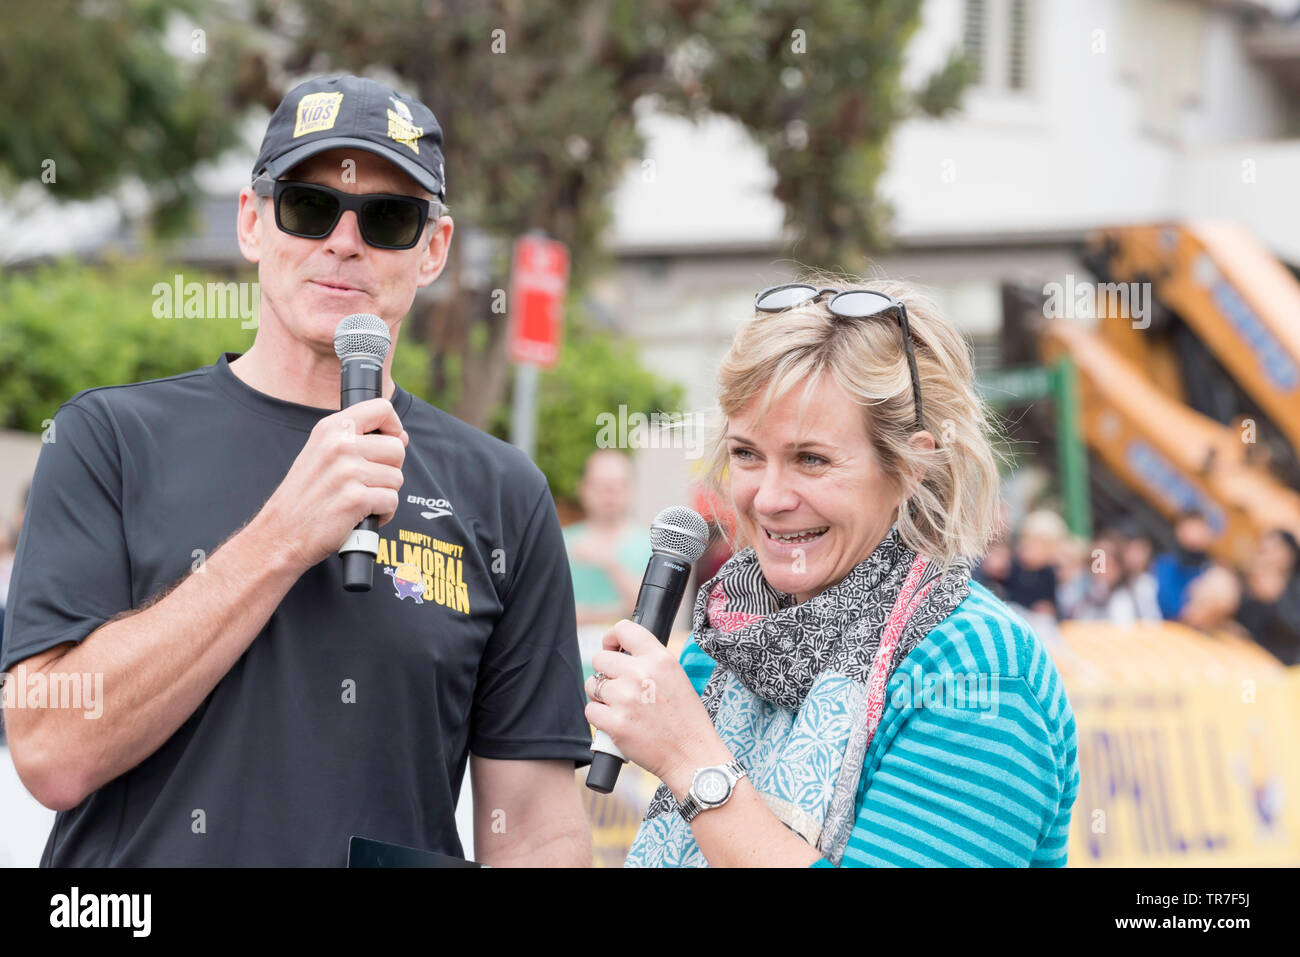 May 26th 2019 Sydney, Aust: Newly elected Federal member for the seat of Warringah, Zali Steggall encourages young runners at the Balmoral Burn race - Stock Image